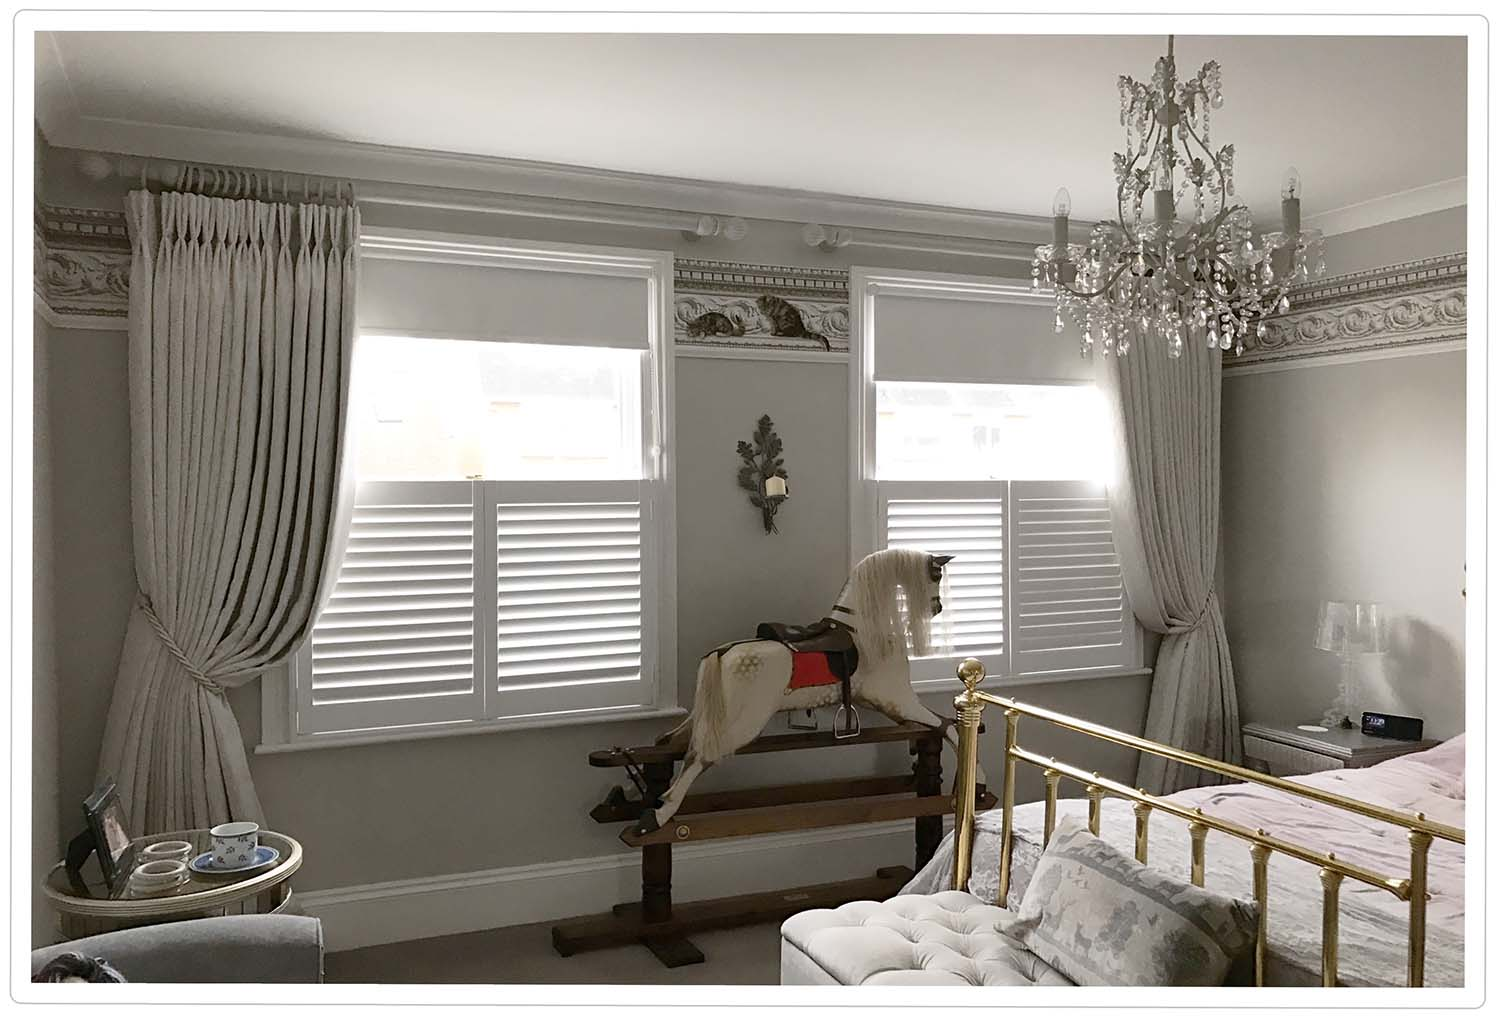 Home Blinds Shutters Creative Curtains Interiors